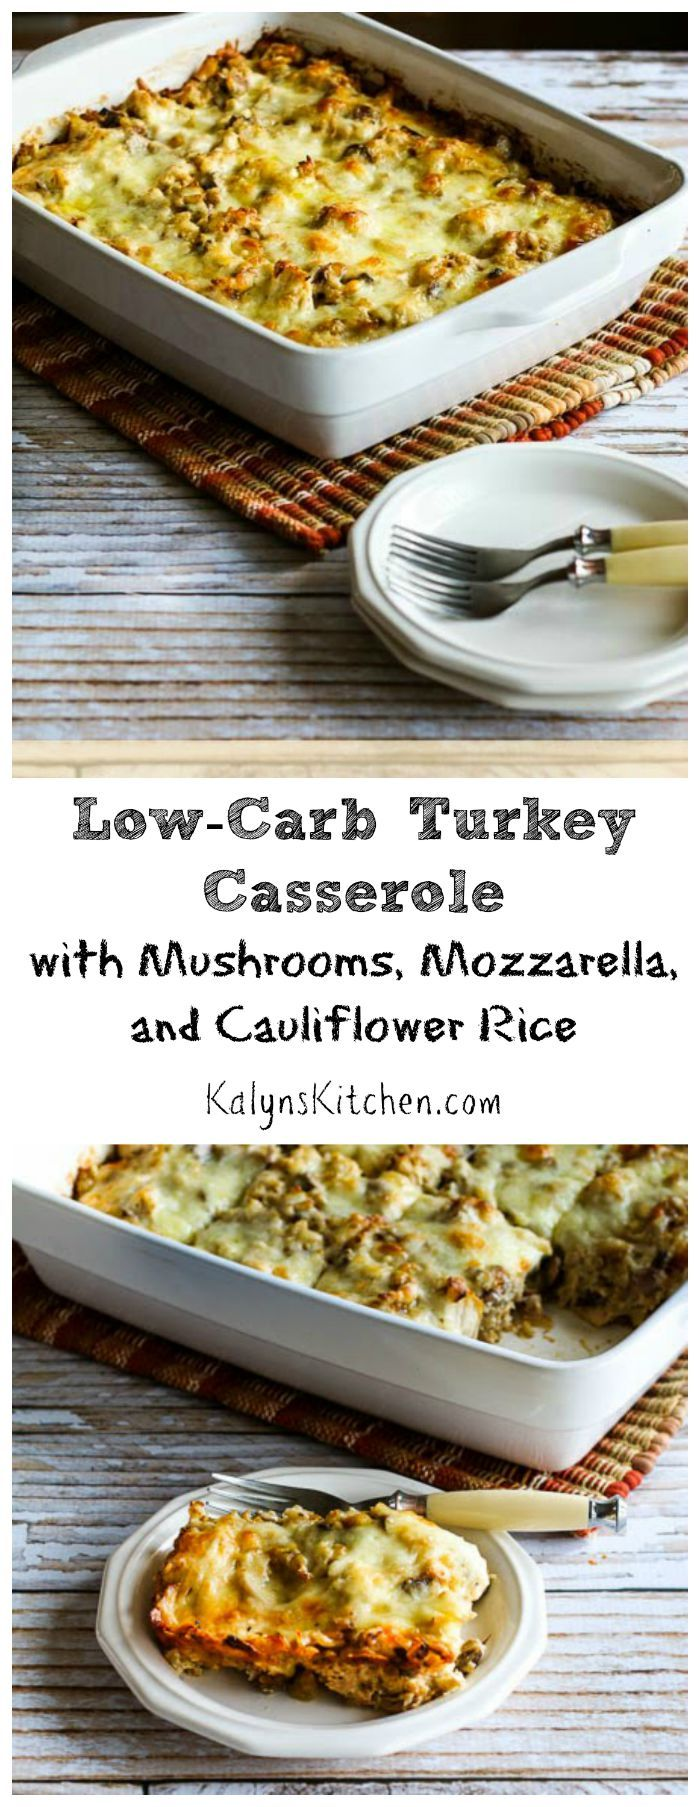 Use turkey or chicken to make this Low-Carb Turkey Casserole with Mushrooms, Mozzarella, and Cauliflower Rice. Some readers have reported good results making it with ground turkey too. PIN NOW so you'll have this for back to school! [from KalynsKitchen.com]